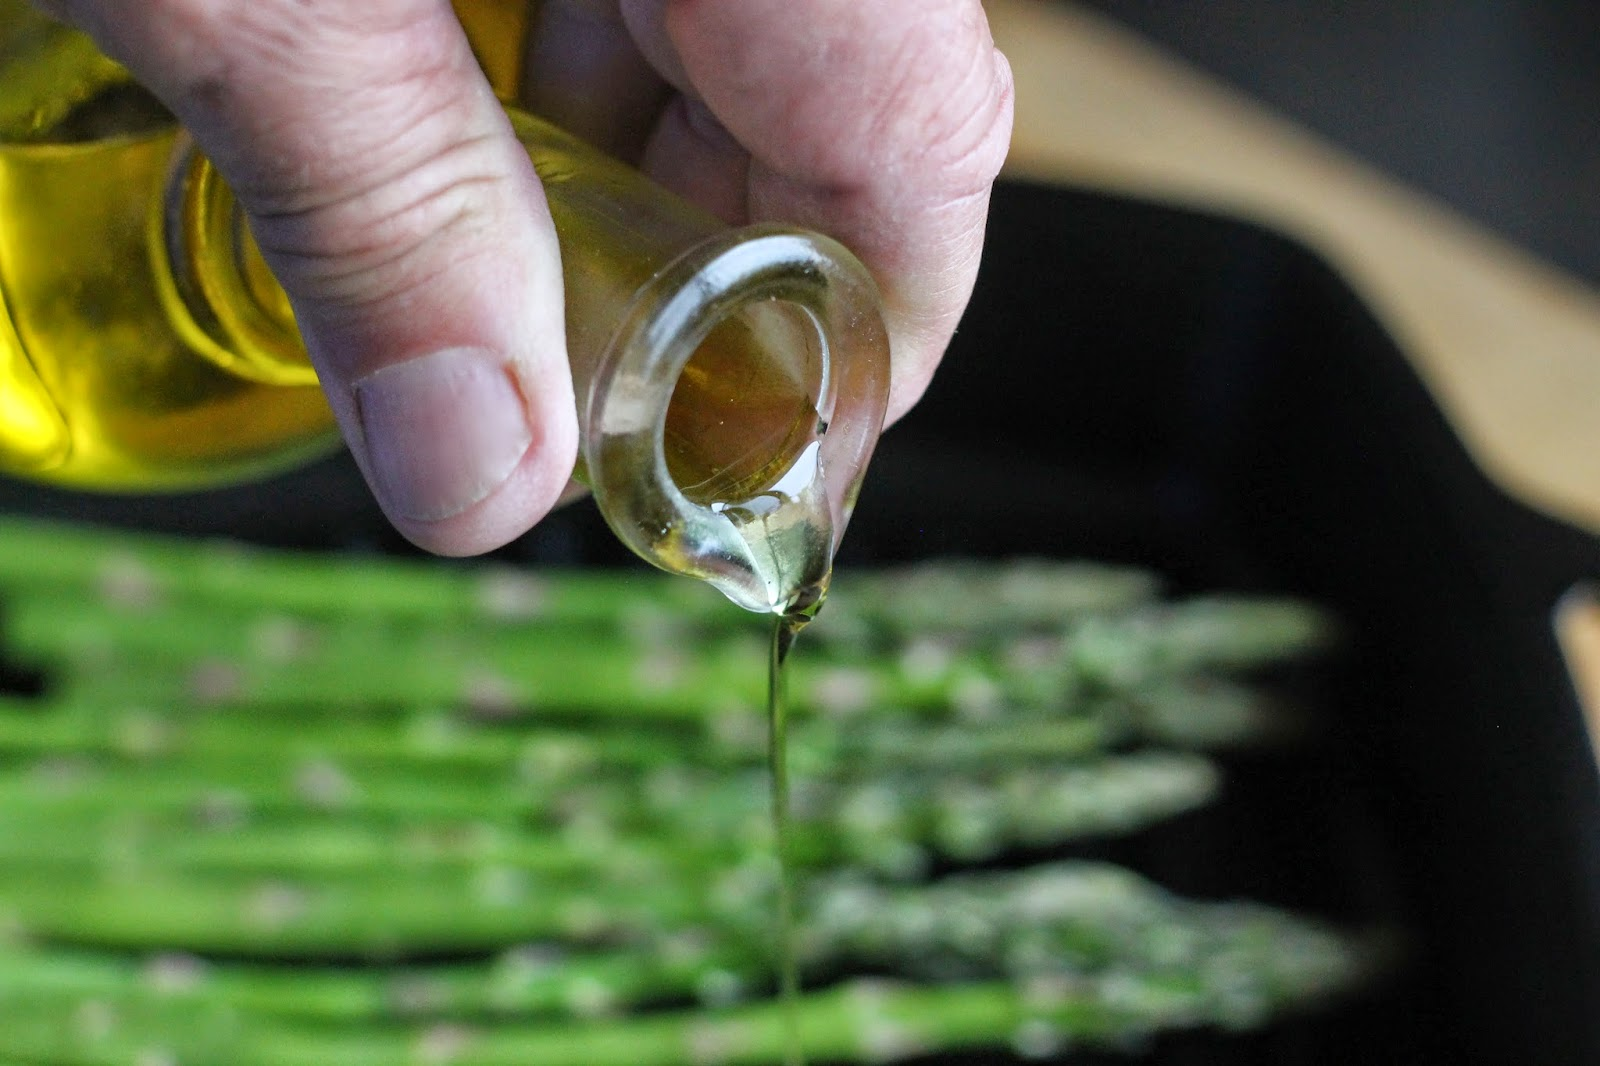 For This Recipe, Steve Grilled The Asparagus In A Ribbed Cast Iron Skillet  He Sprayed The Pan First With Cooking Spray, Turned The Burner To A Medium  High